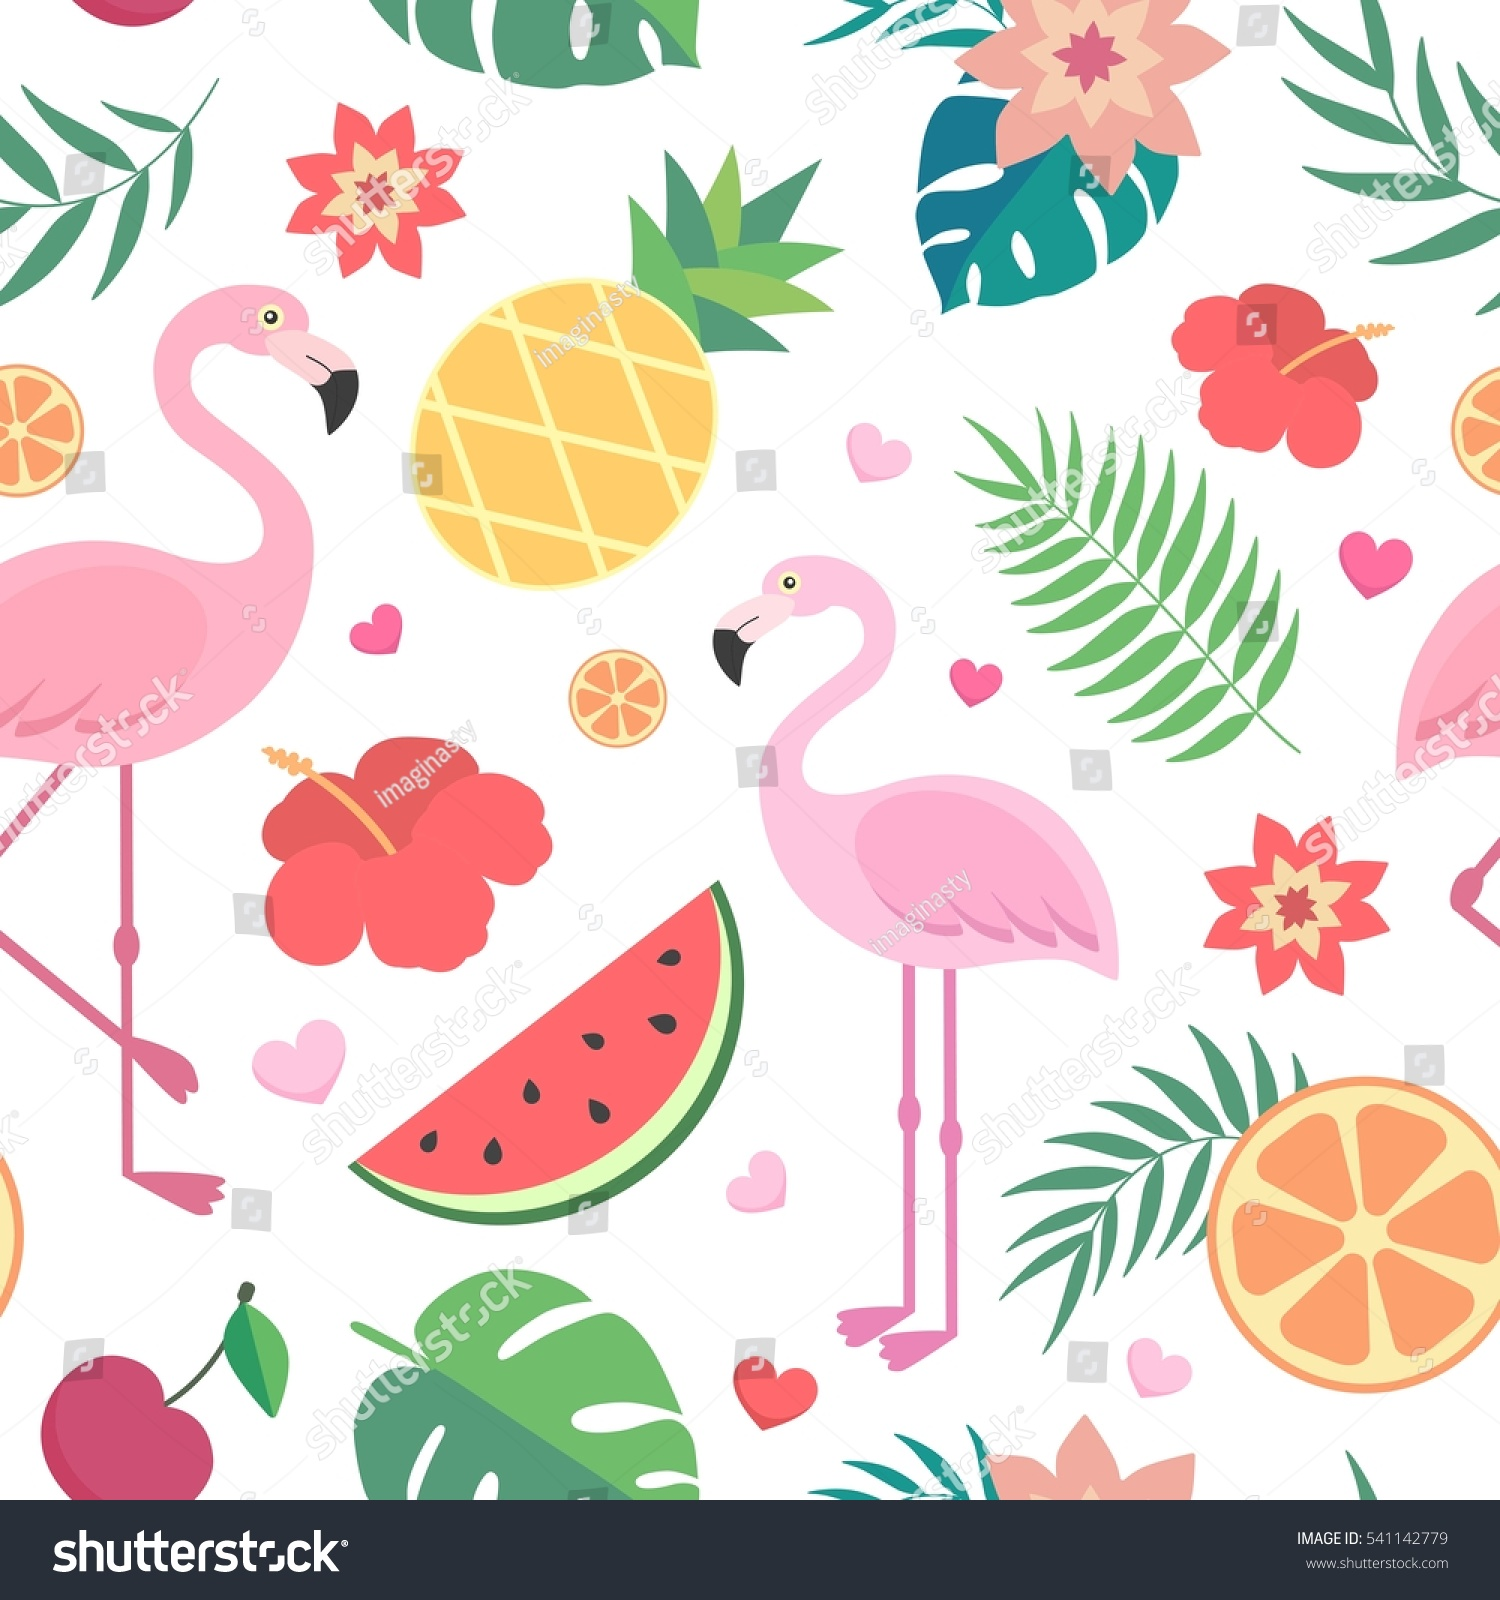 English rose garden wallpaper - Vector Seamless Tropical Pattern Palm Leaves Stock Vector 541142779